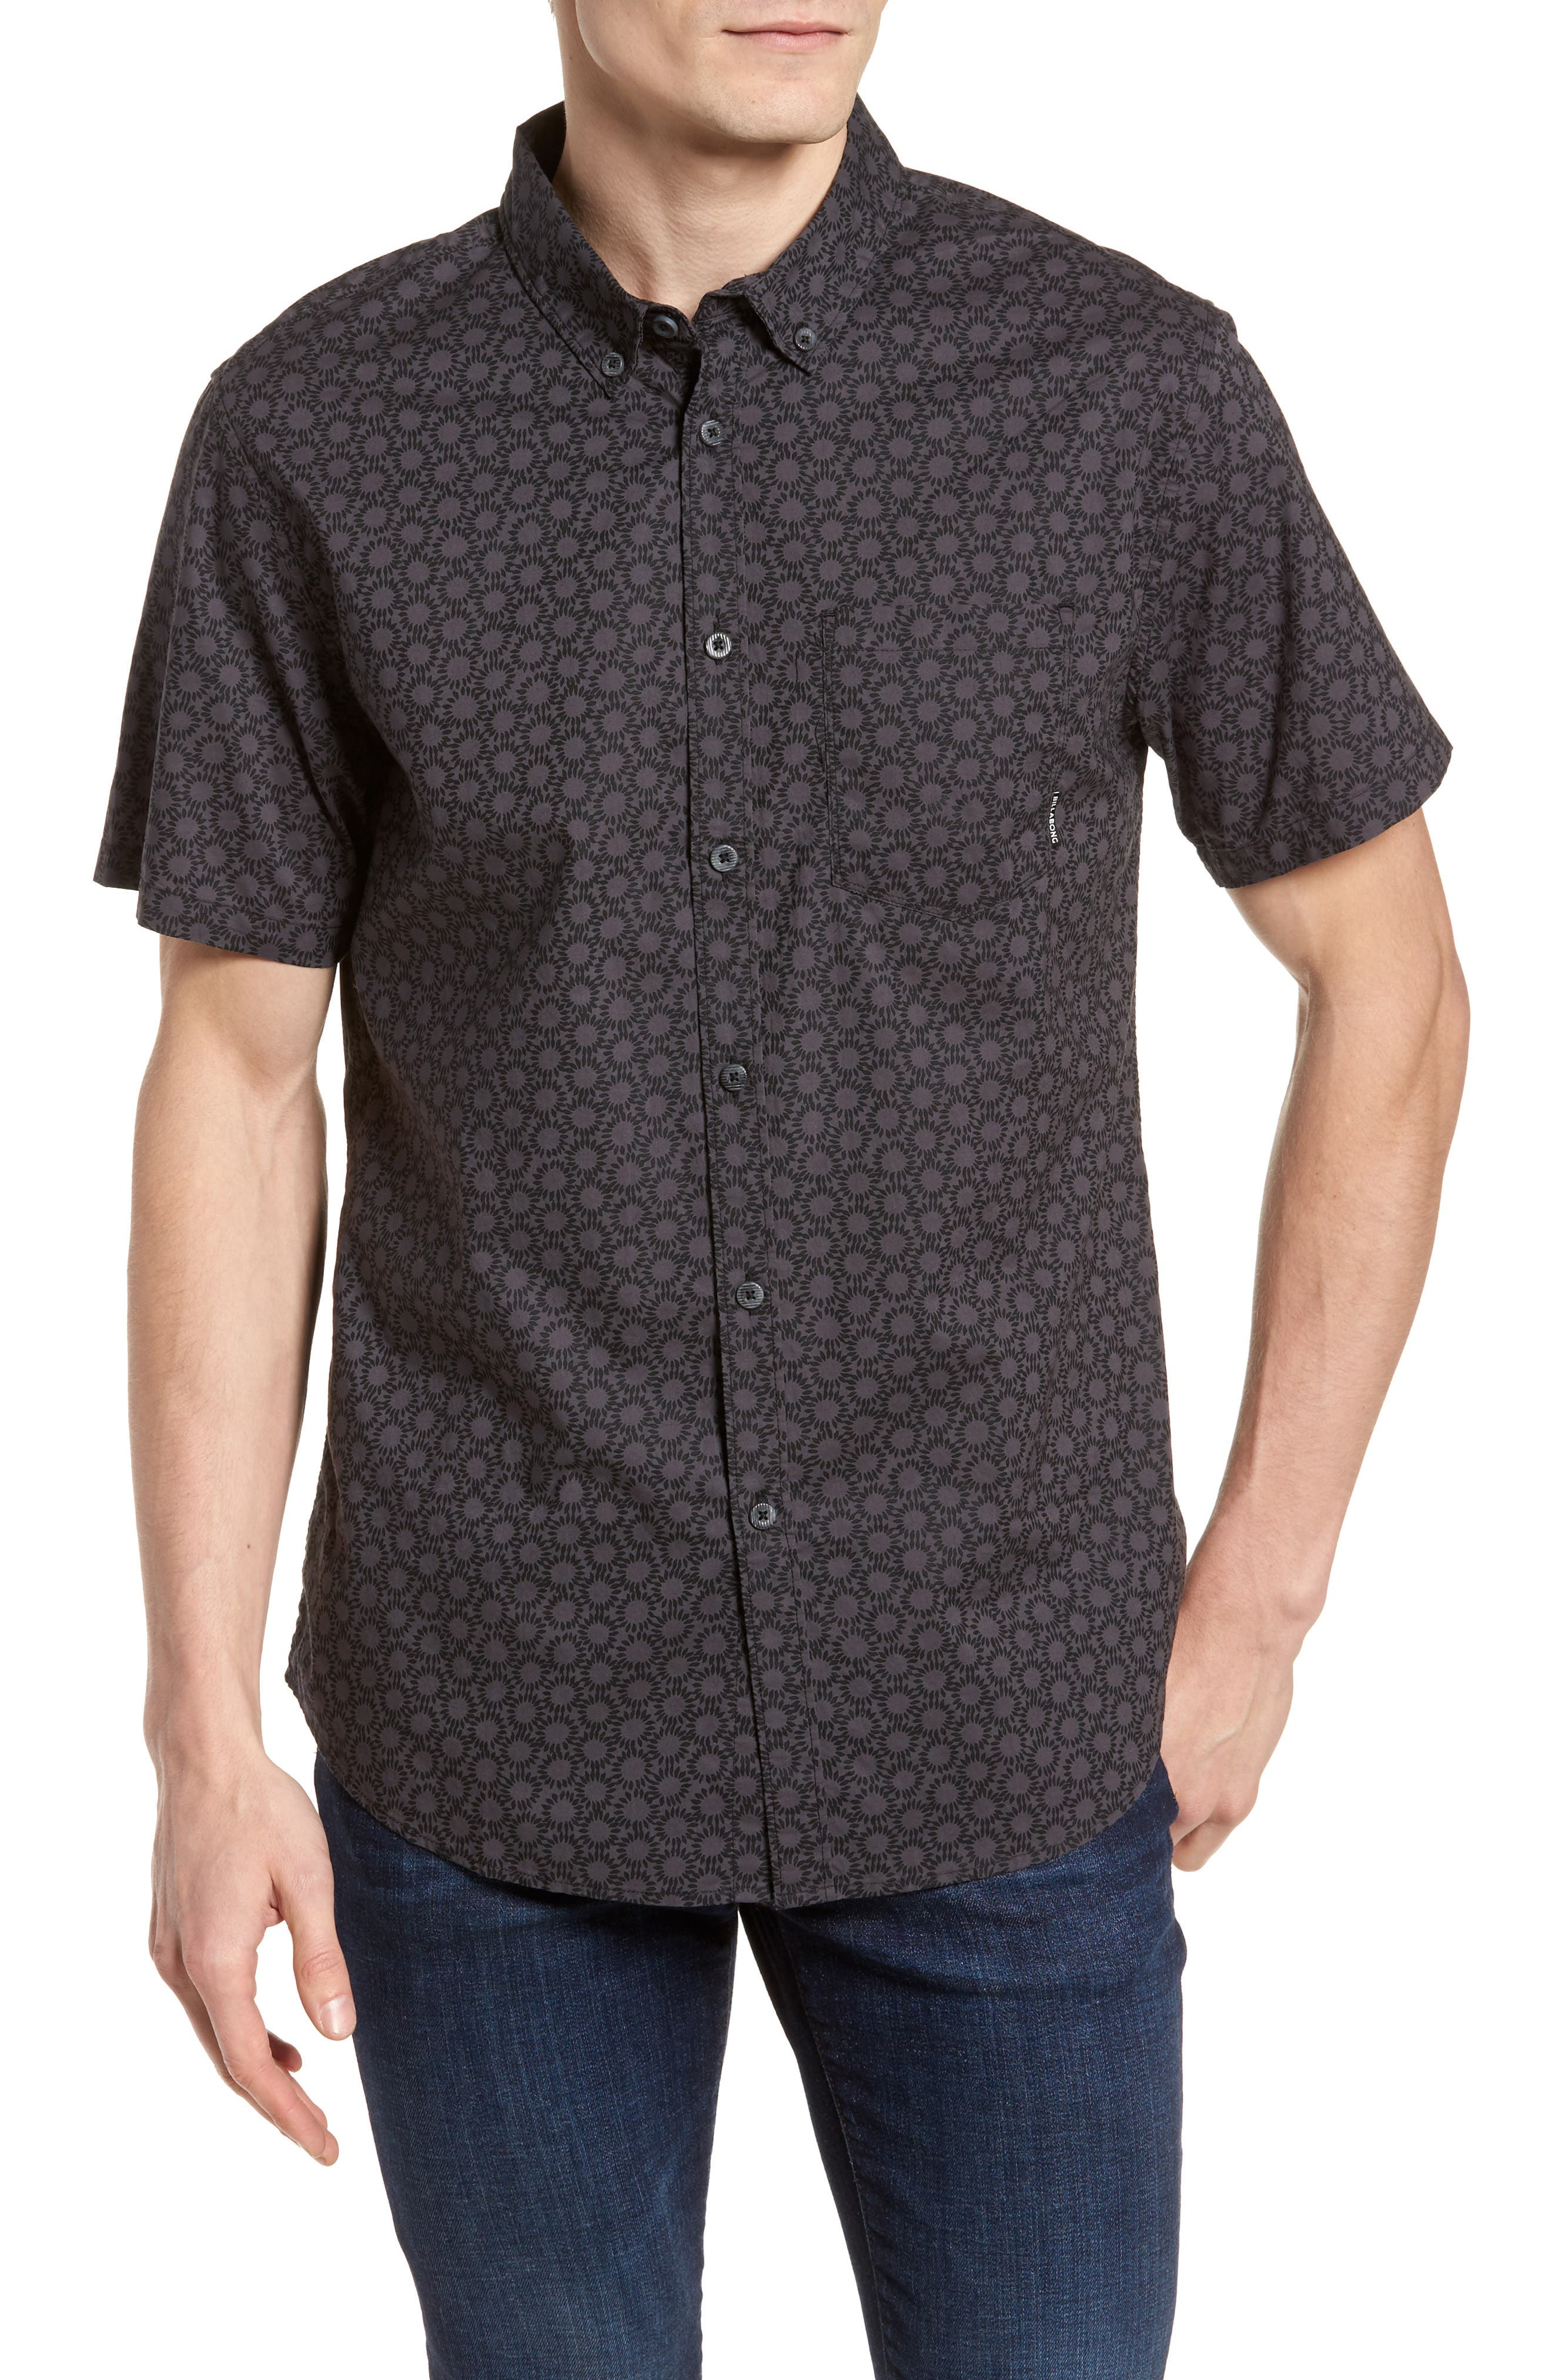 Sundays Sport Shirt,                         Main,                         color, 001